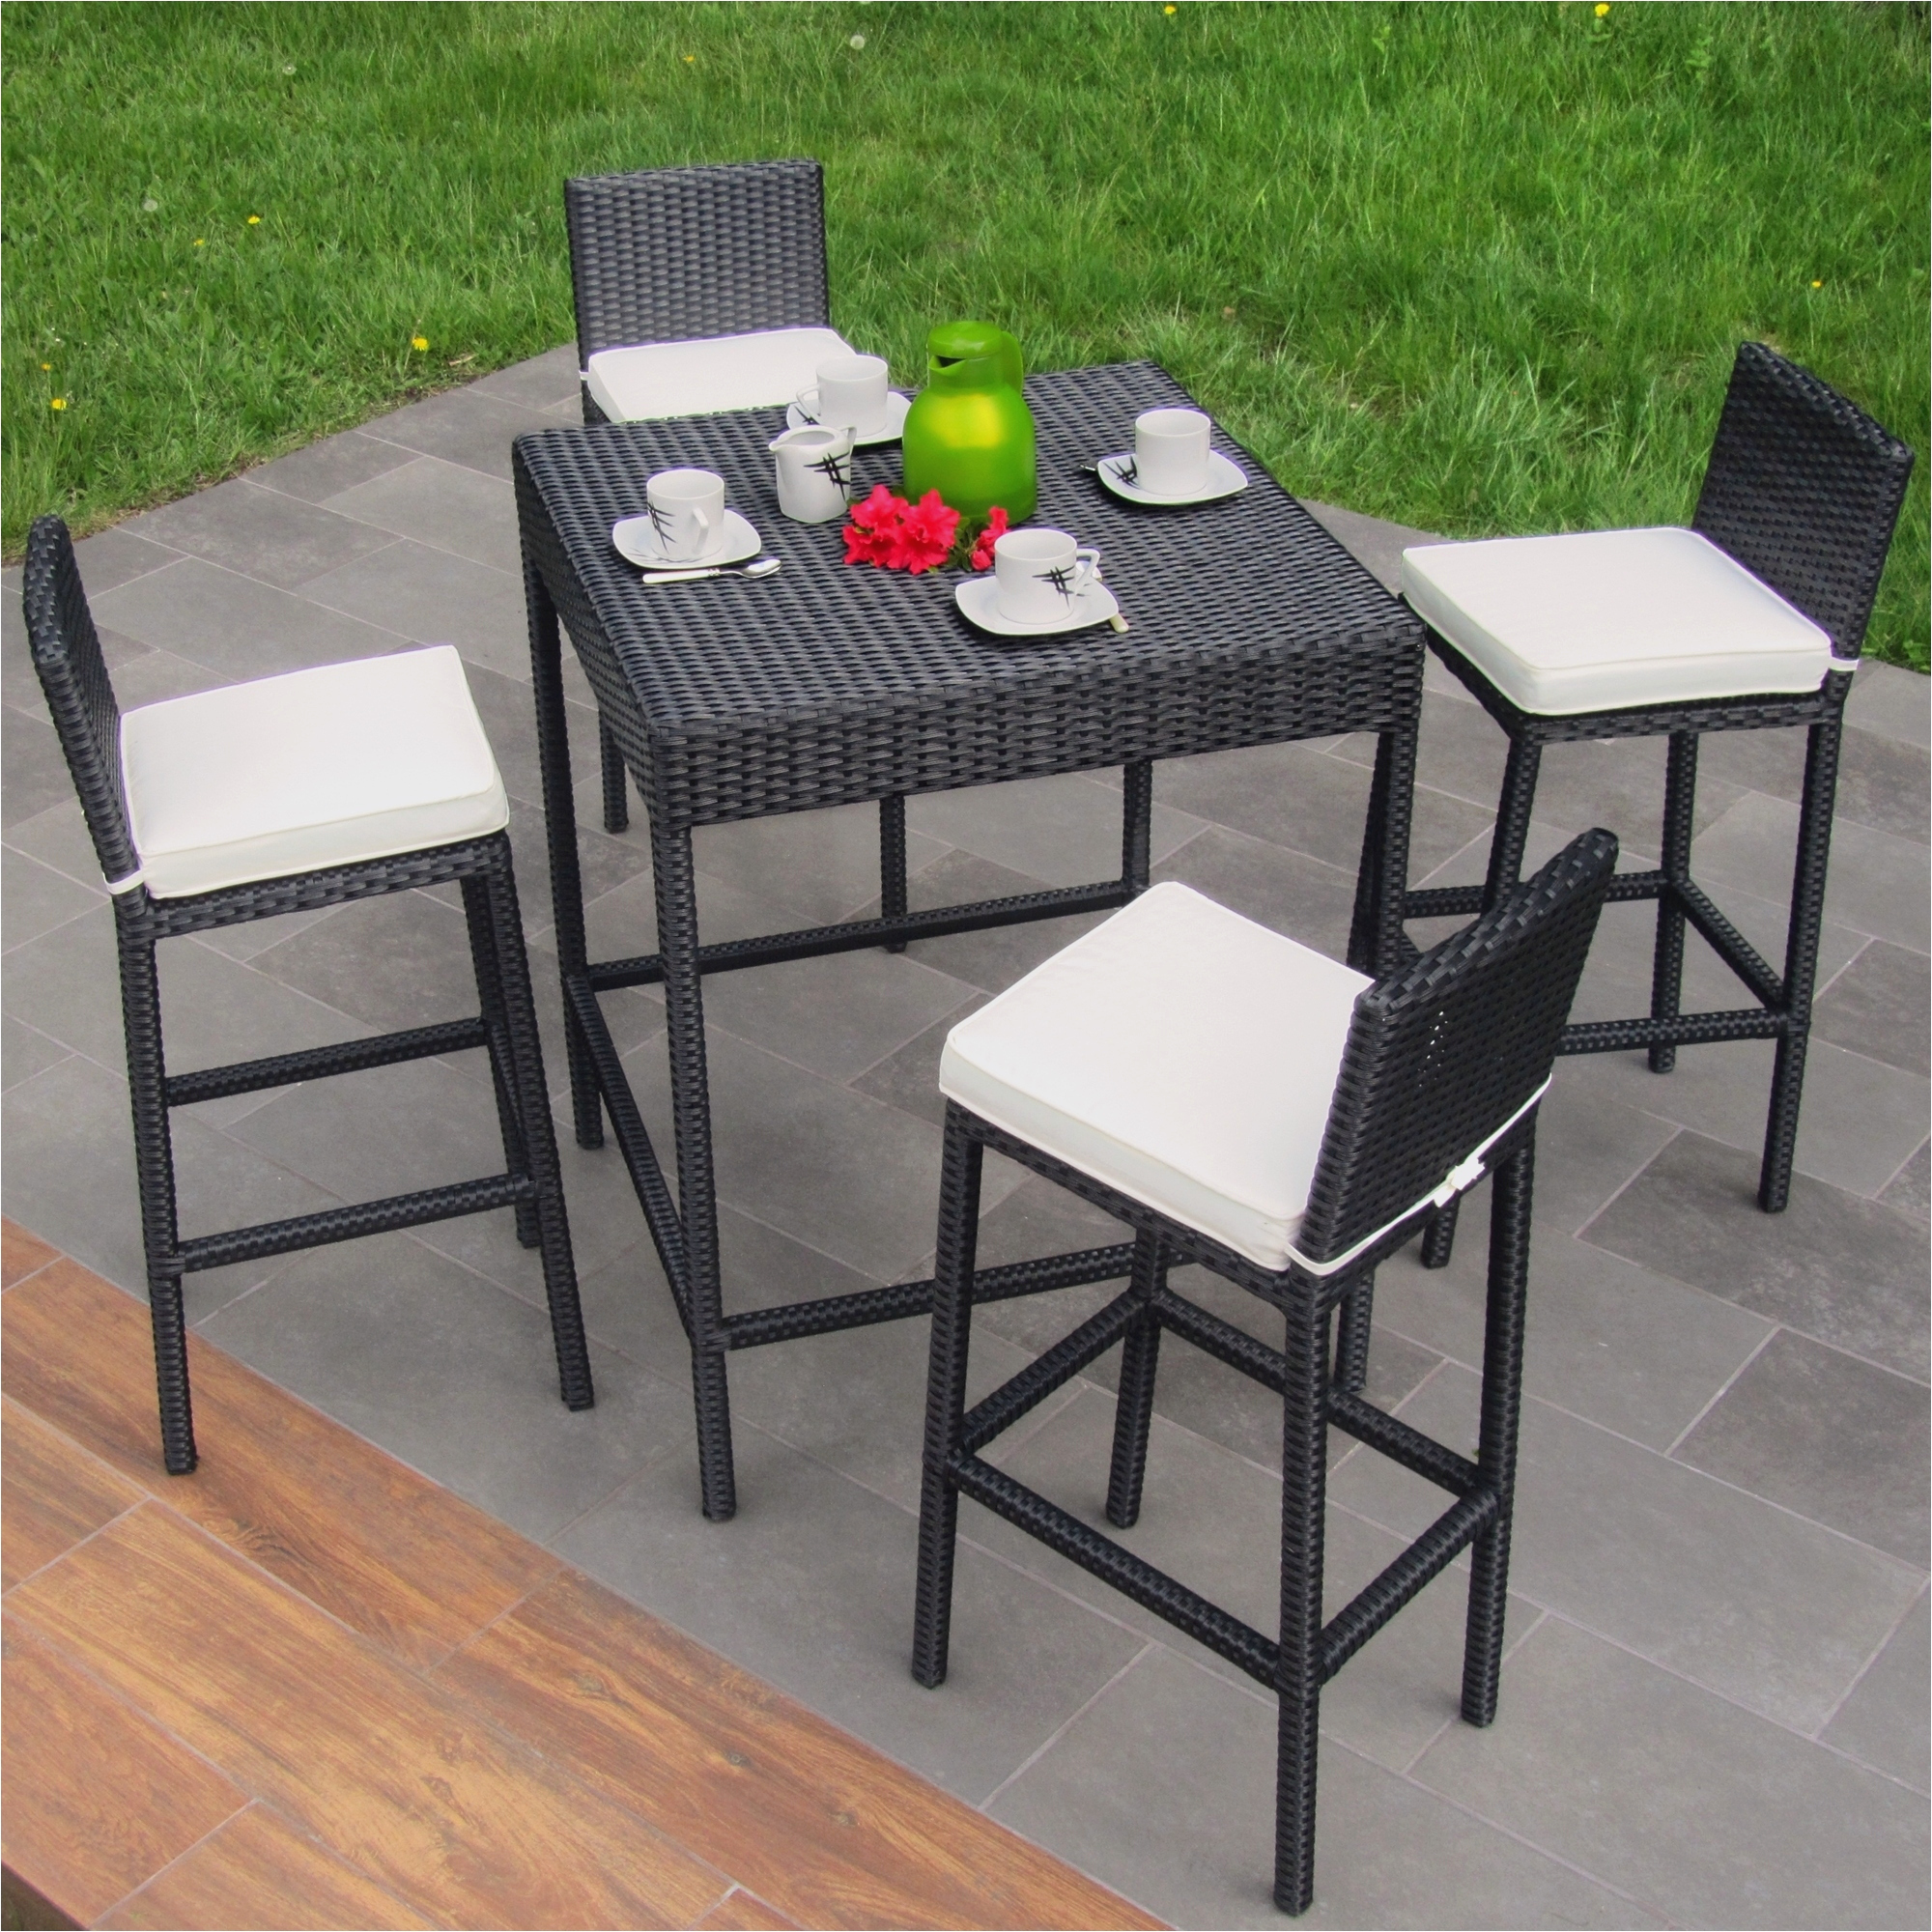 Table Jardin Balcon Table De Balcon Rabattable Carrefour Frais Galerie Table